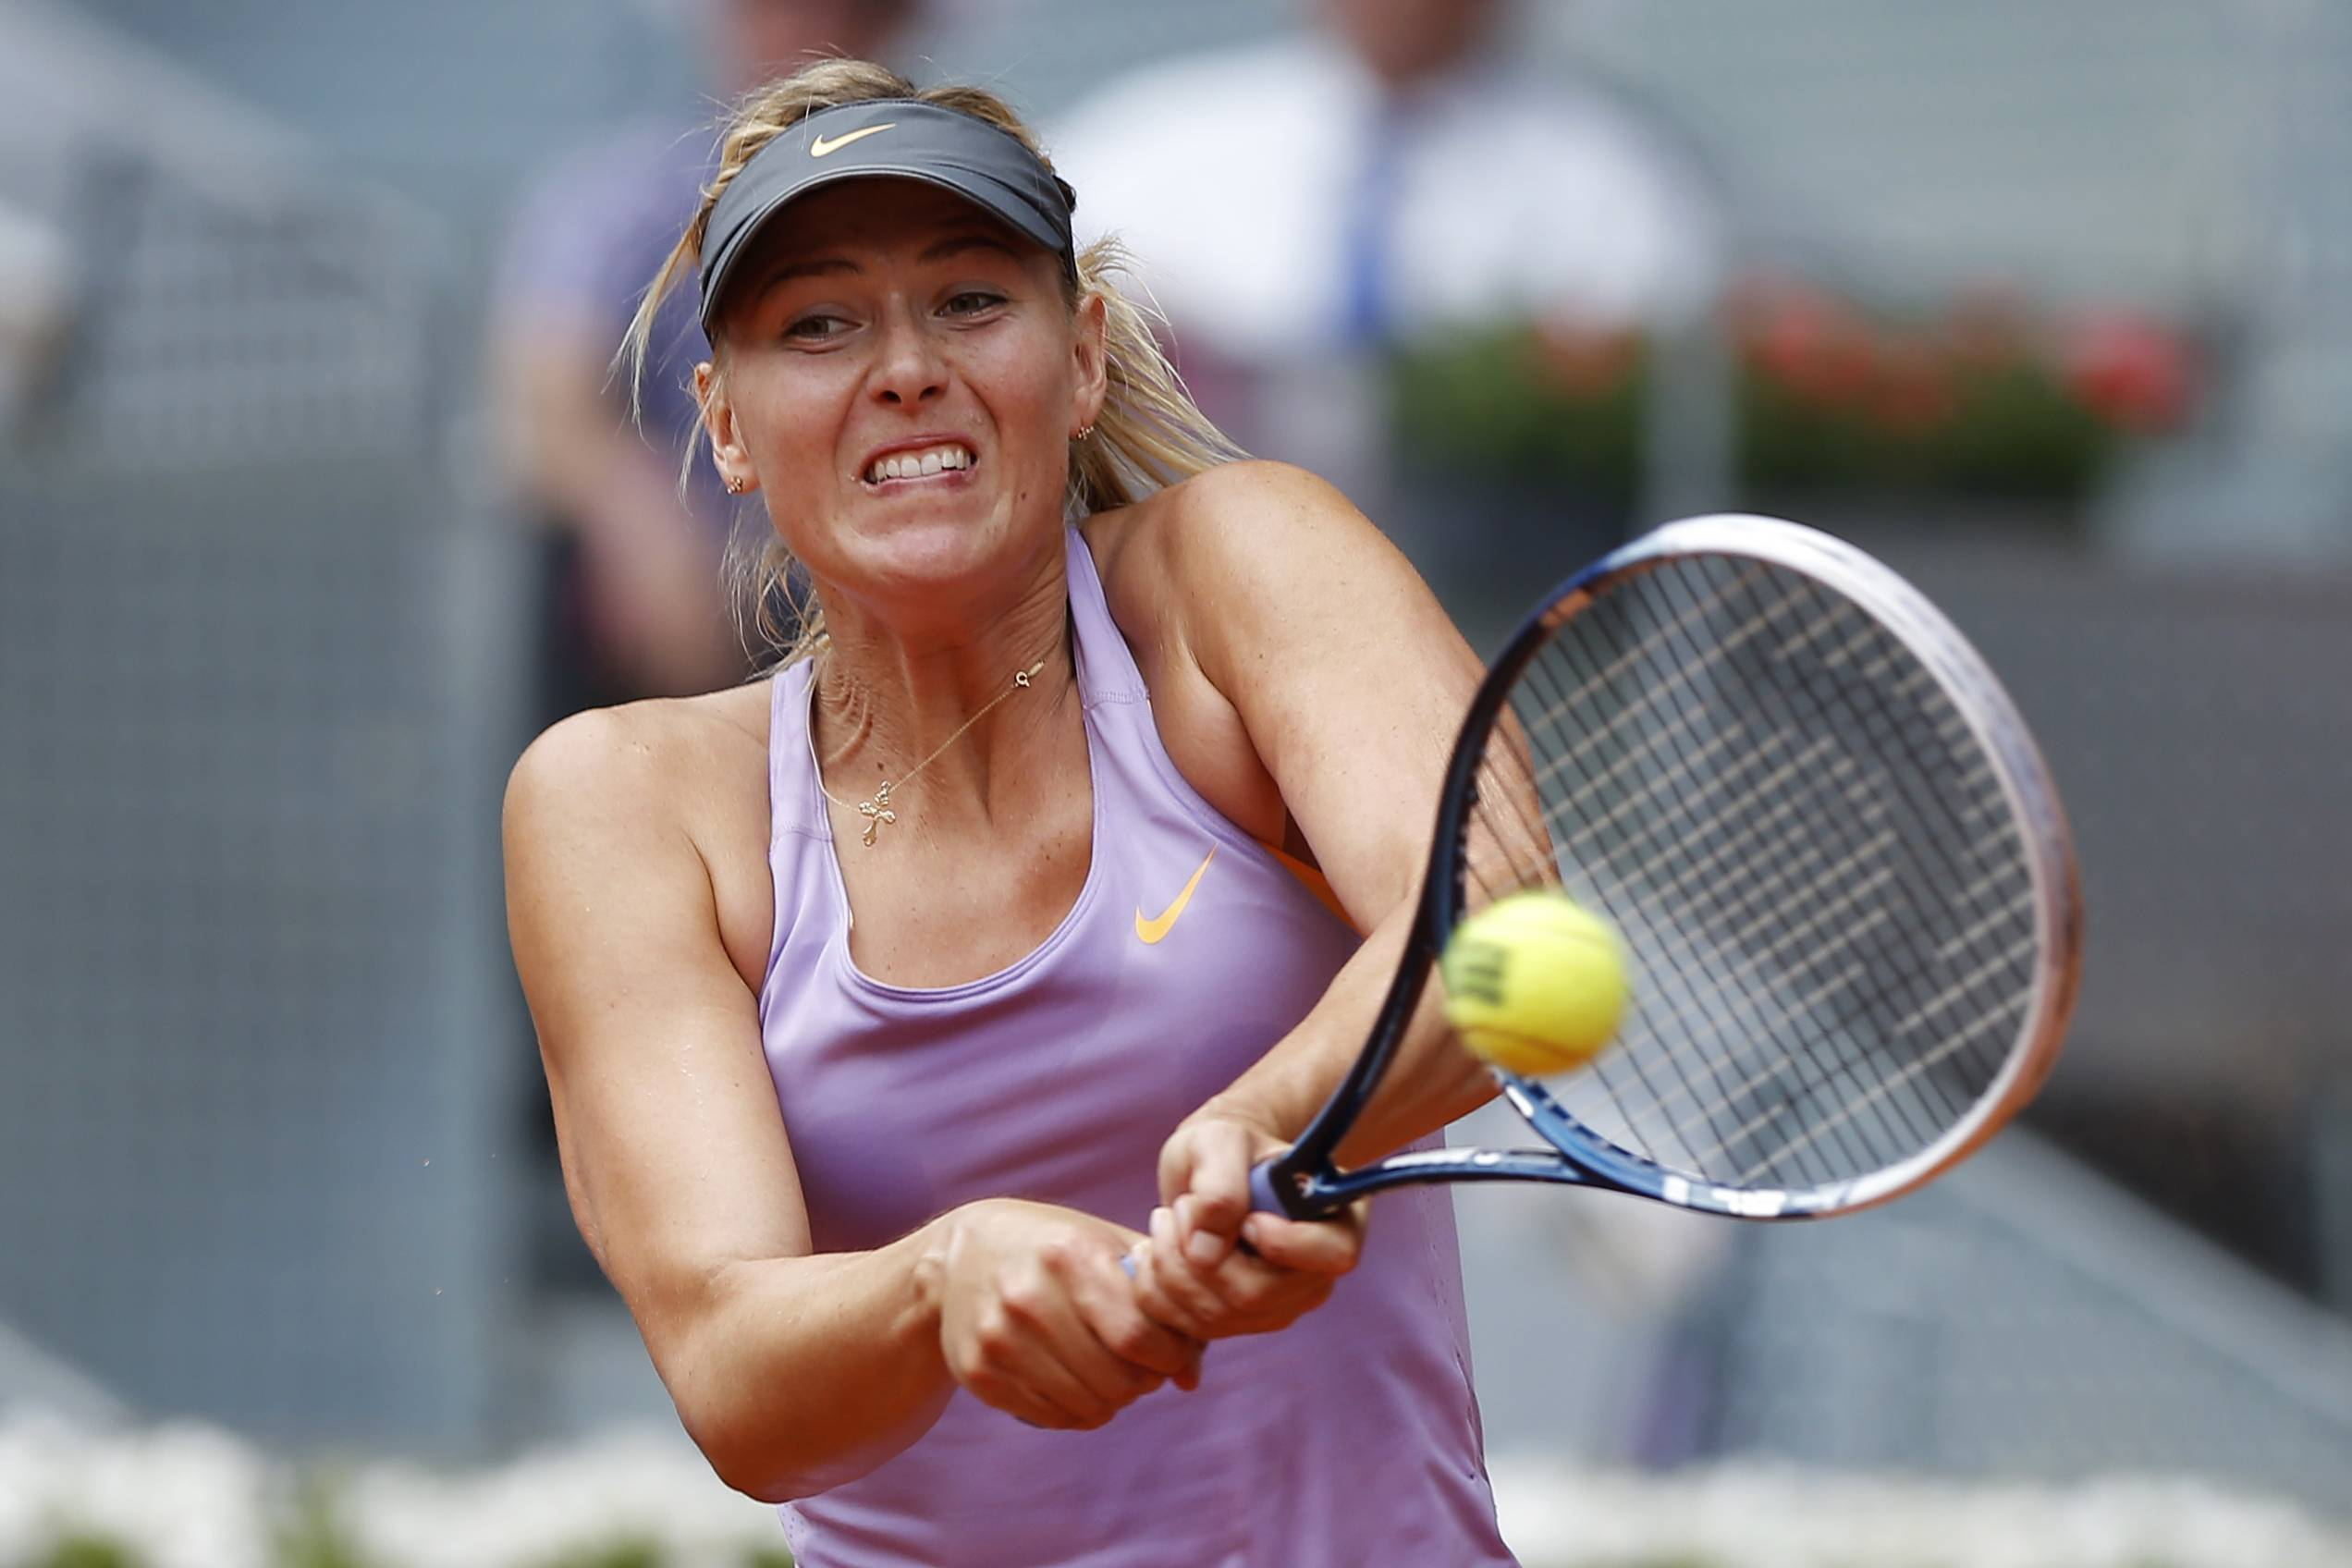 Maria Sharapova from Russia returns the ball to Christina McHale from U.S. during a Madrid Open tennis tournament match, in Madrid, Spain, Tuesday May 6, 2014.